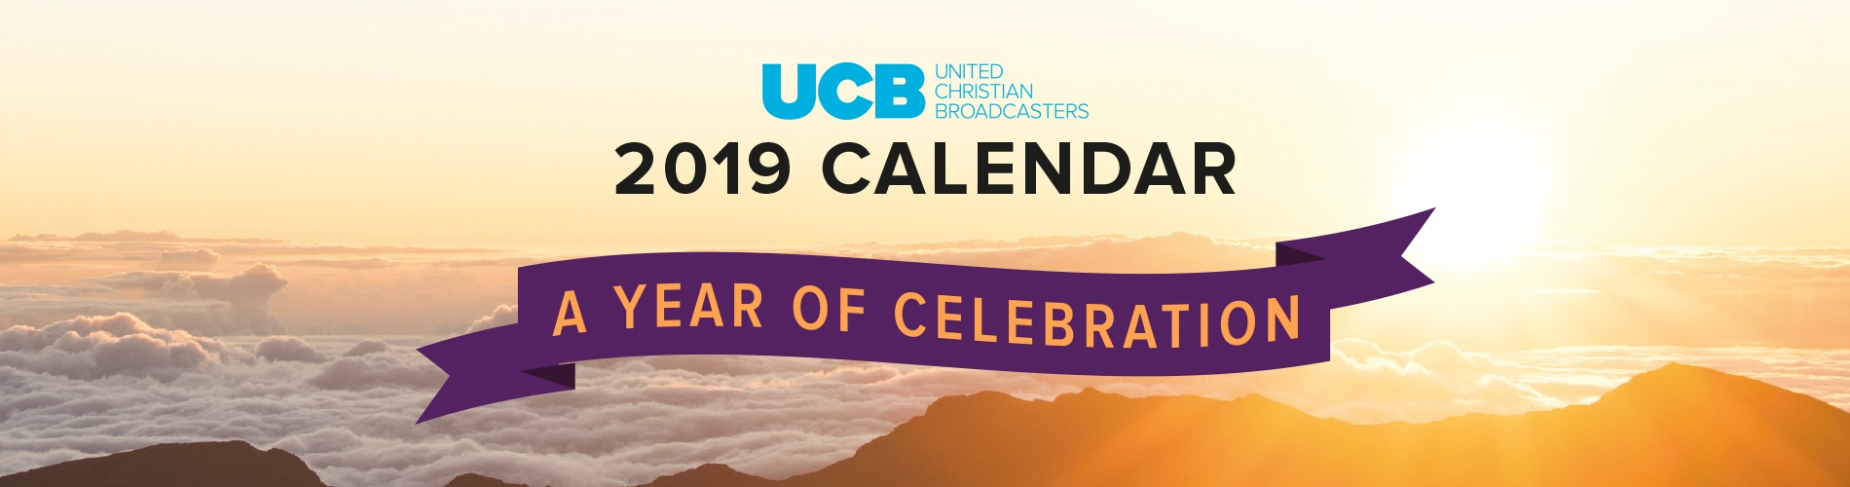 2019 Calendar - A year of Celebration